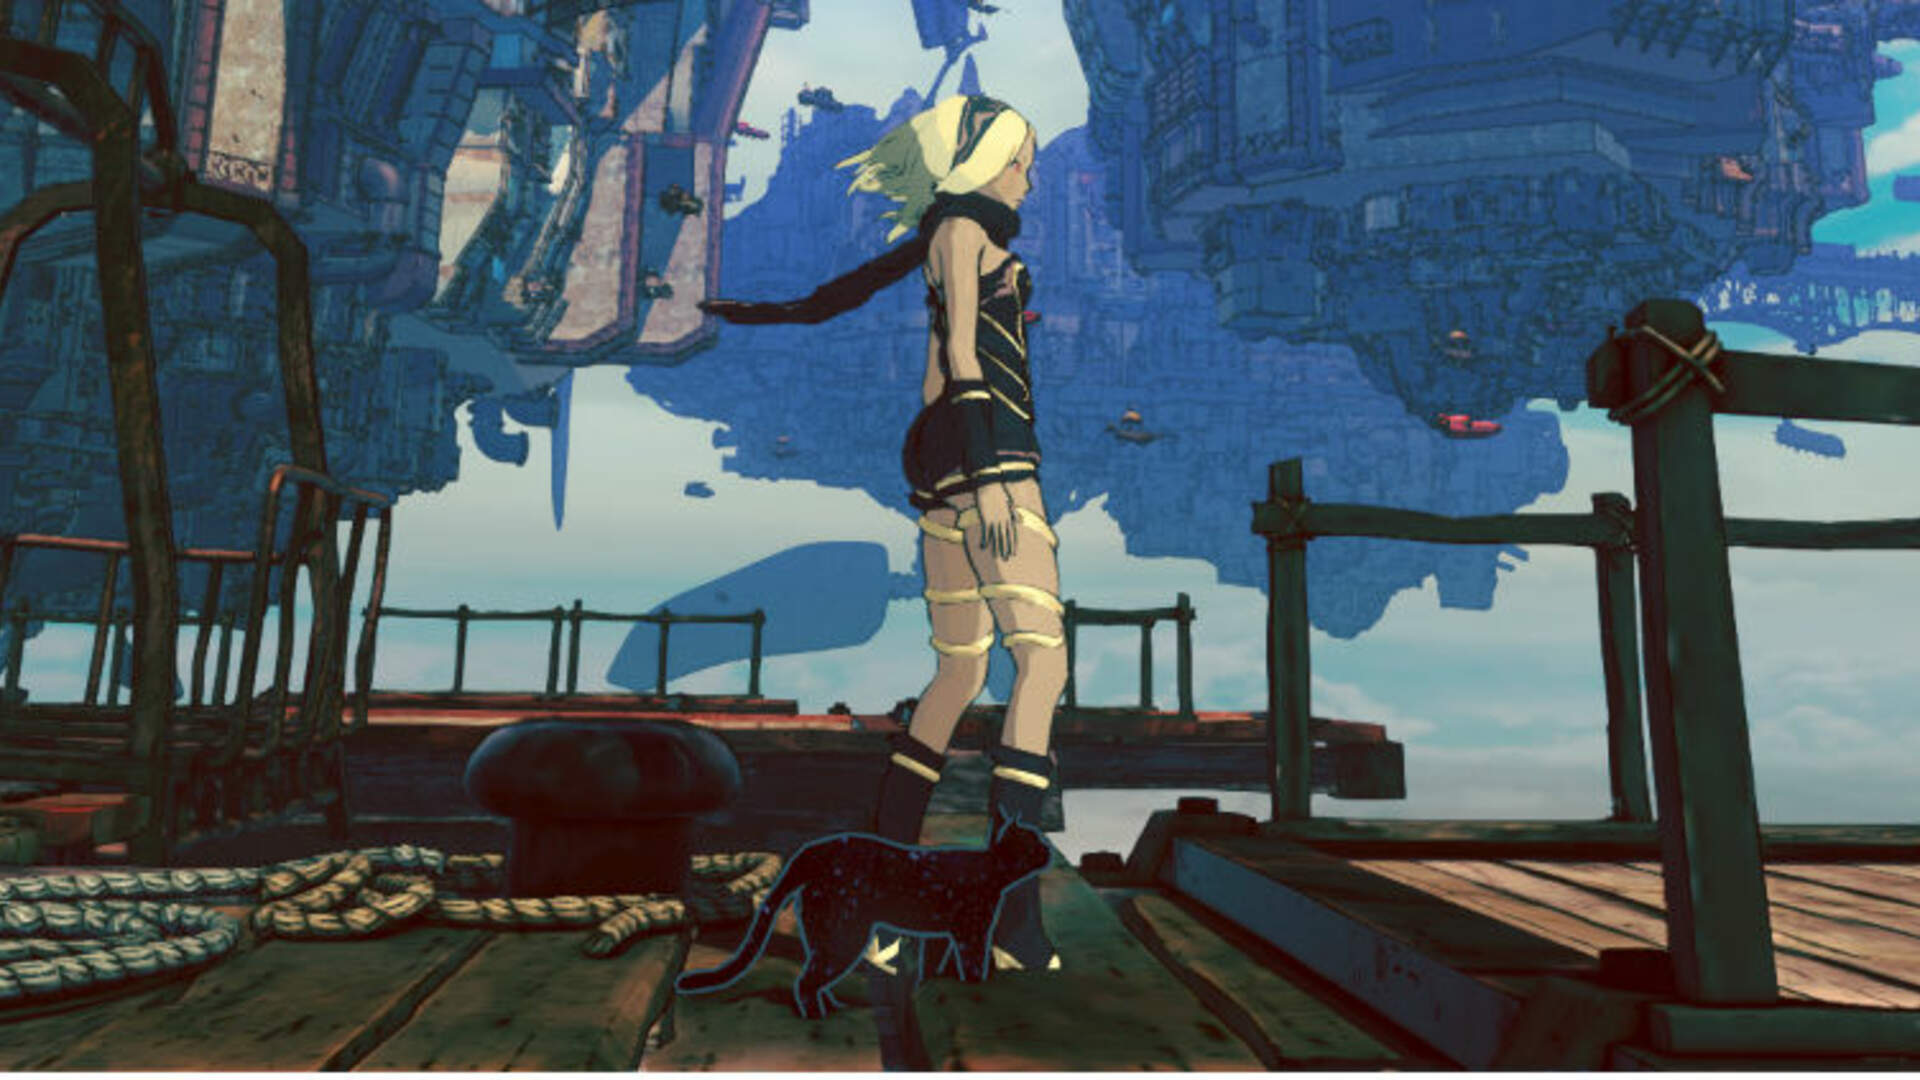 I'm No Longer Disappointed That Gravity Rush 2 Won't Be On PlayStation Vita